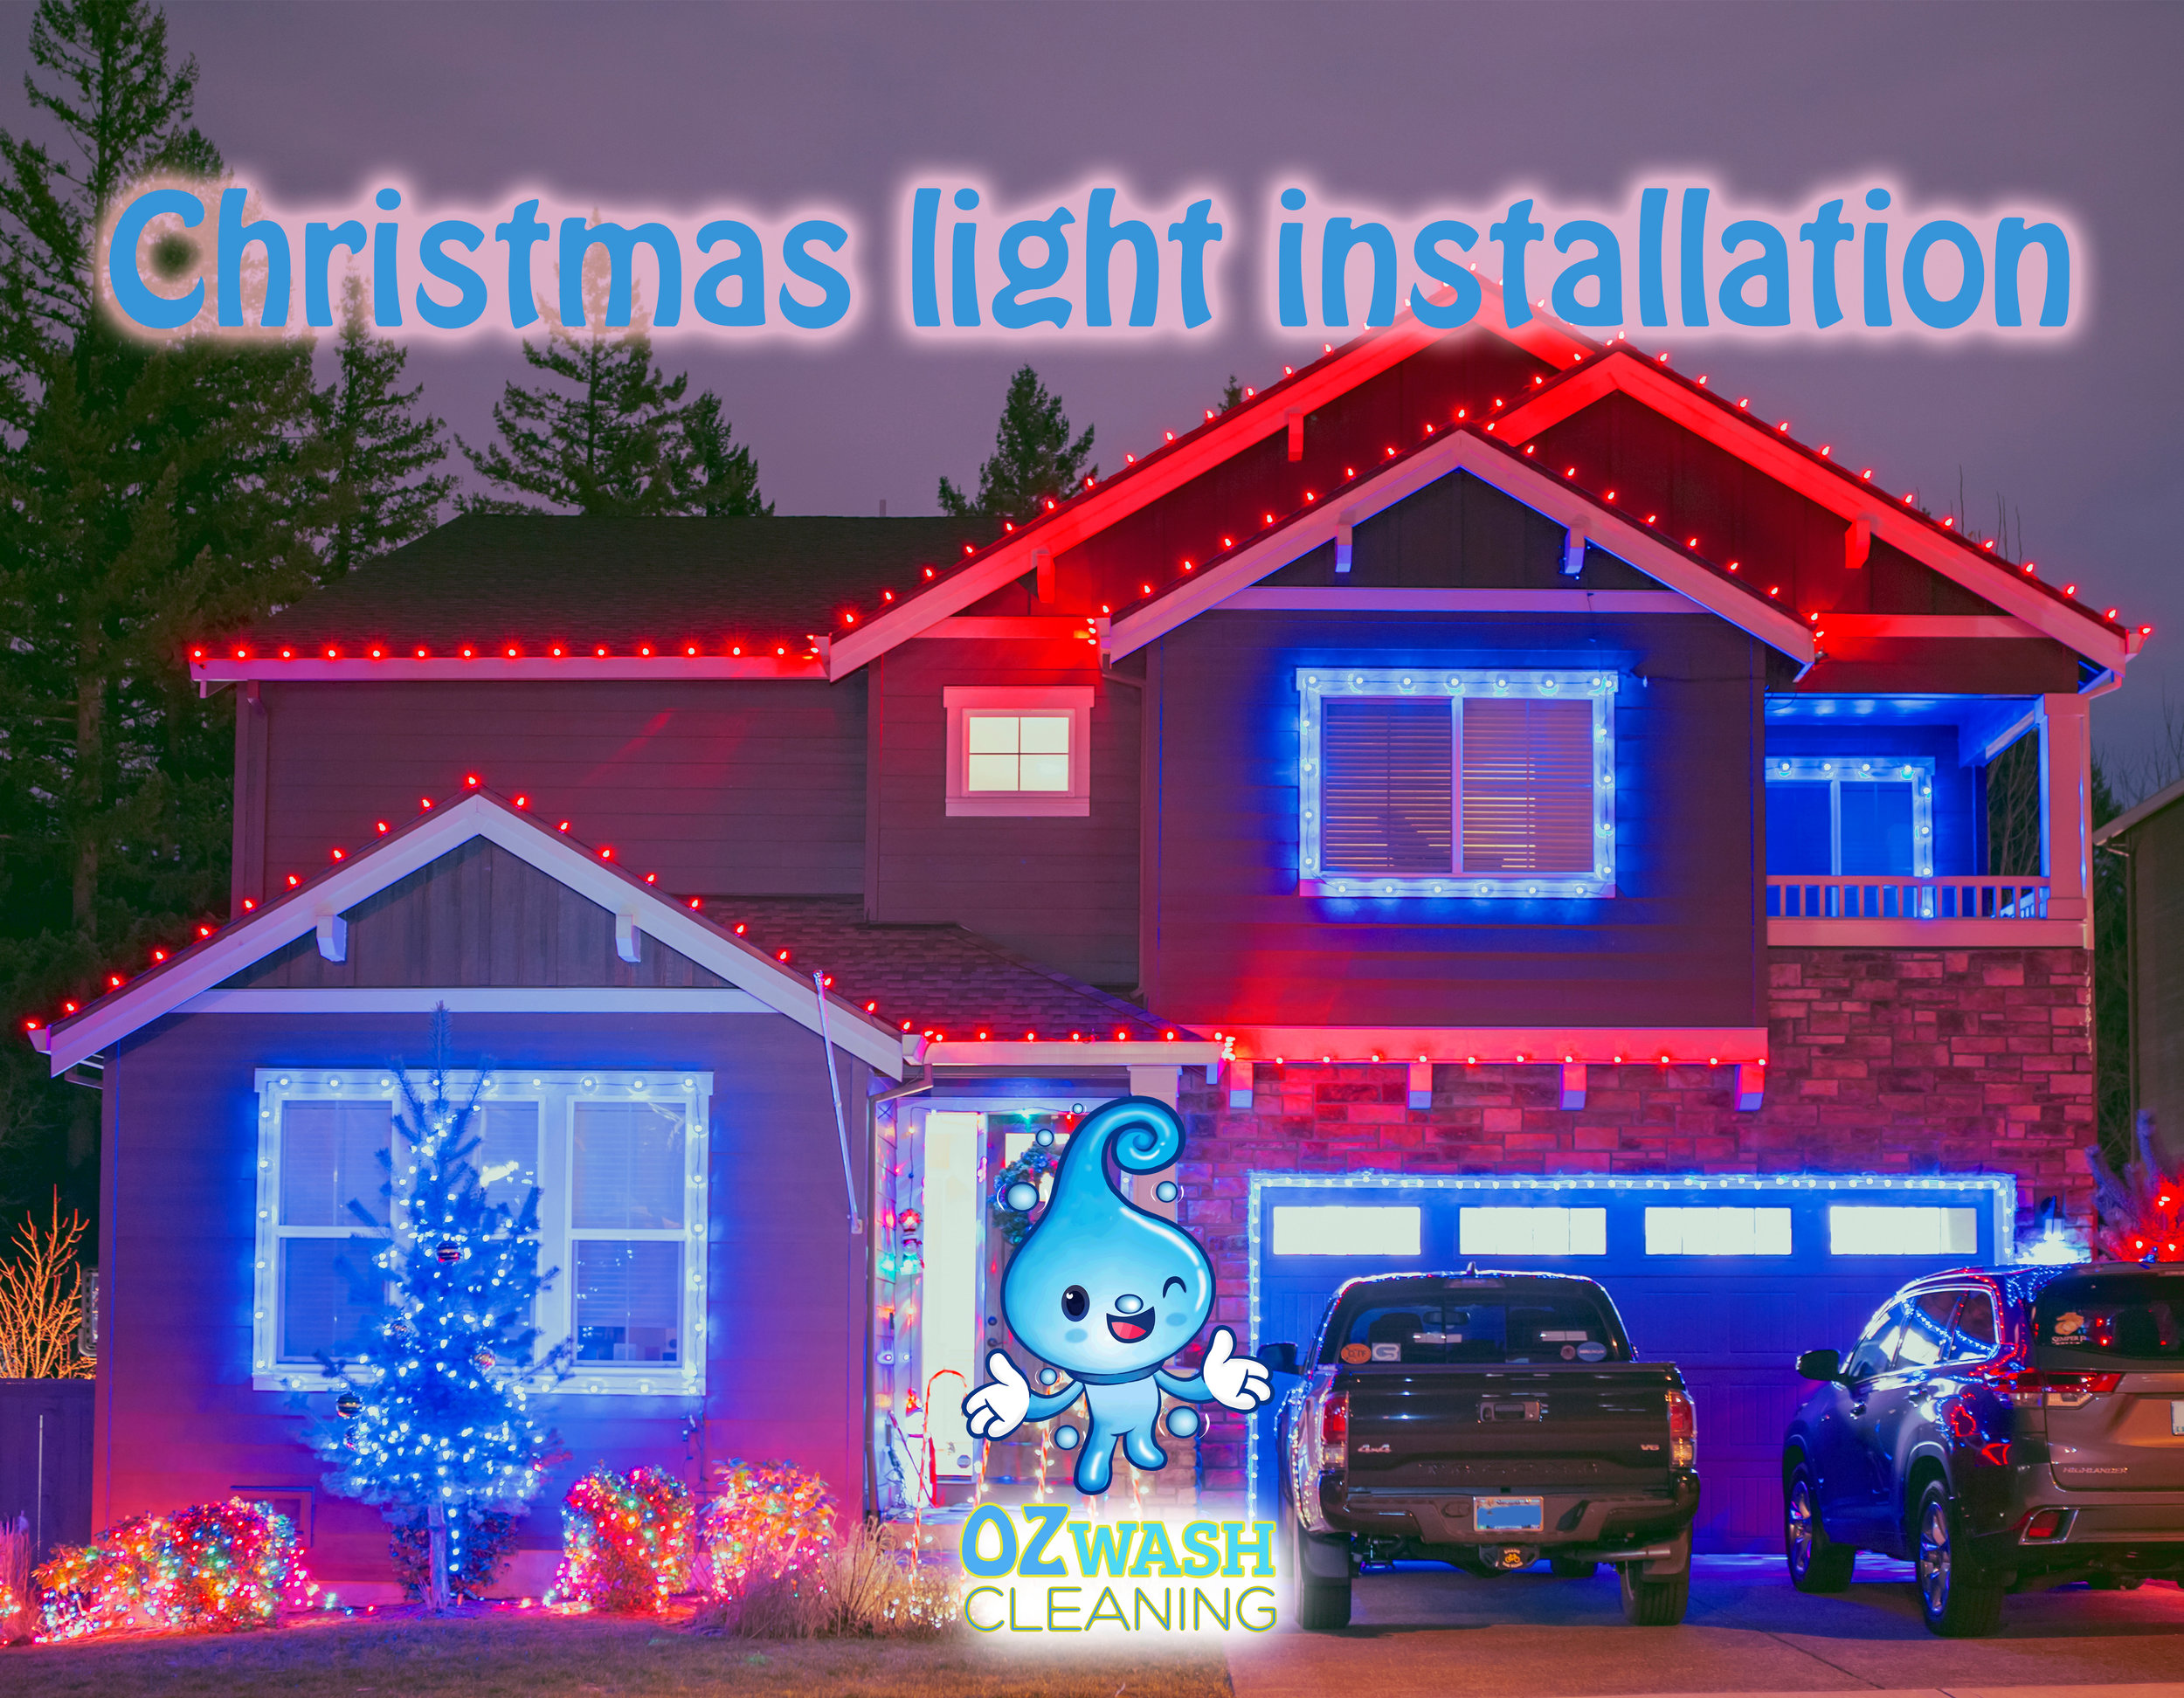 Christmas Light Installation10.jpg